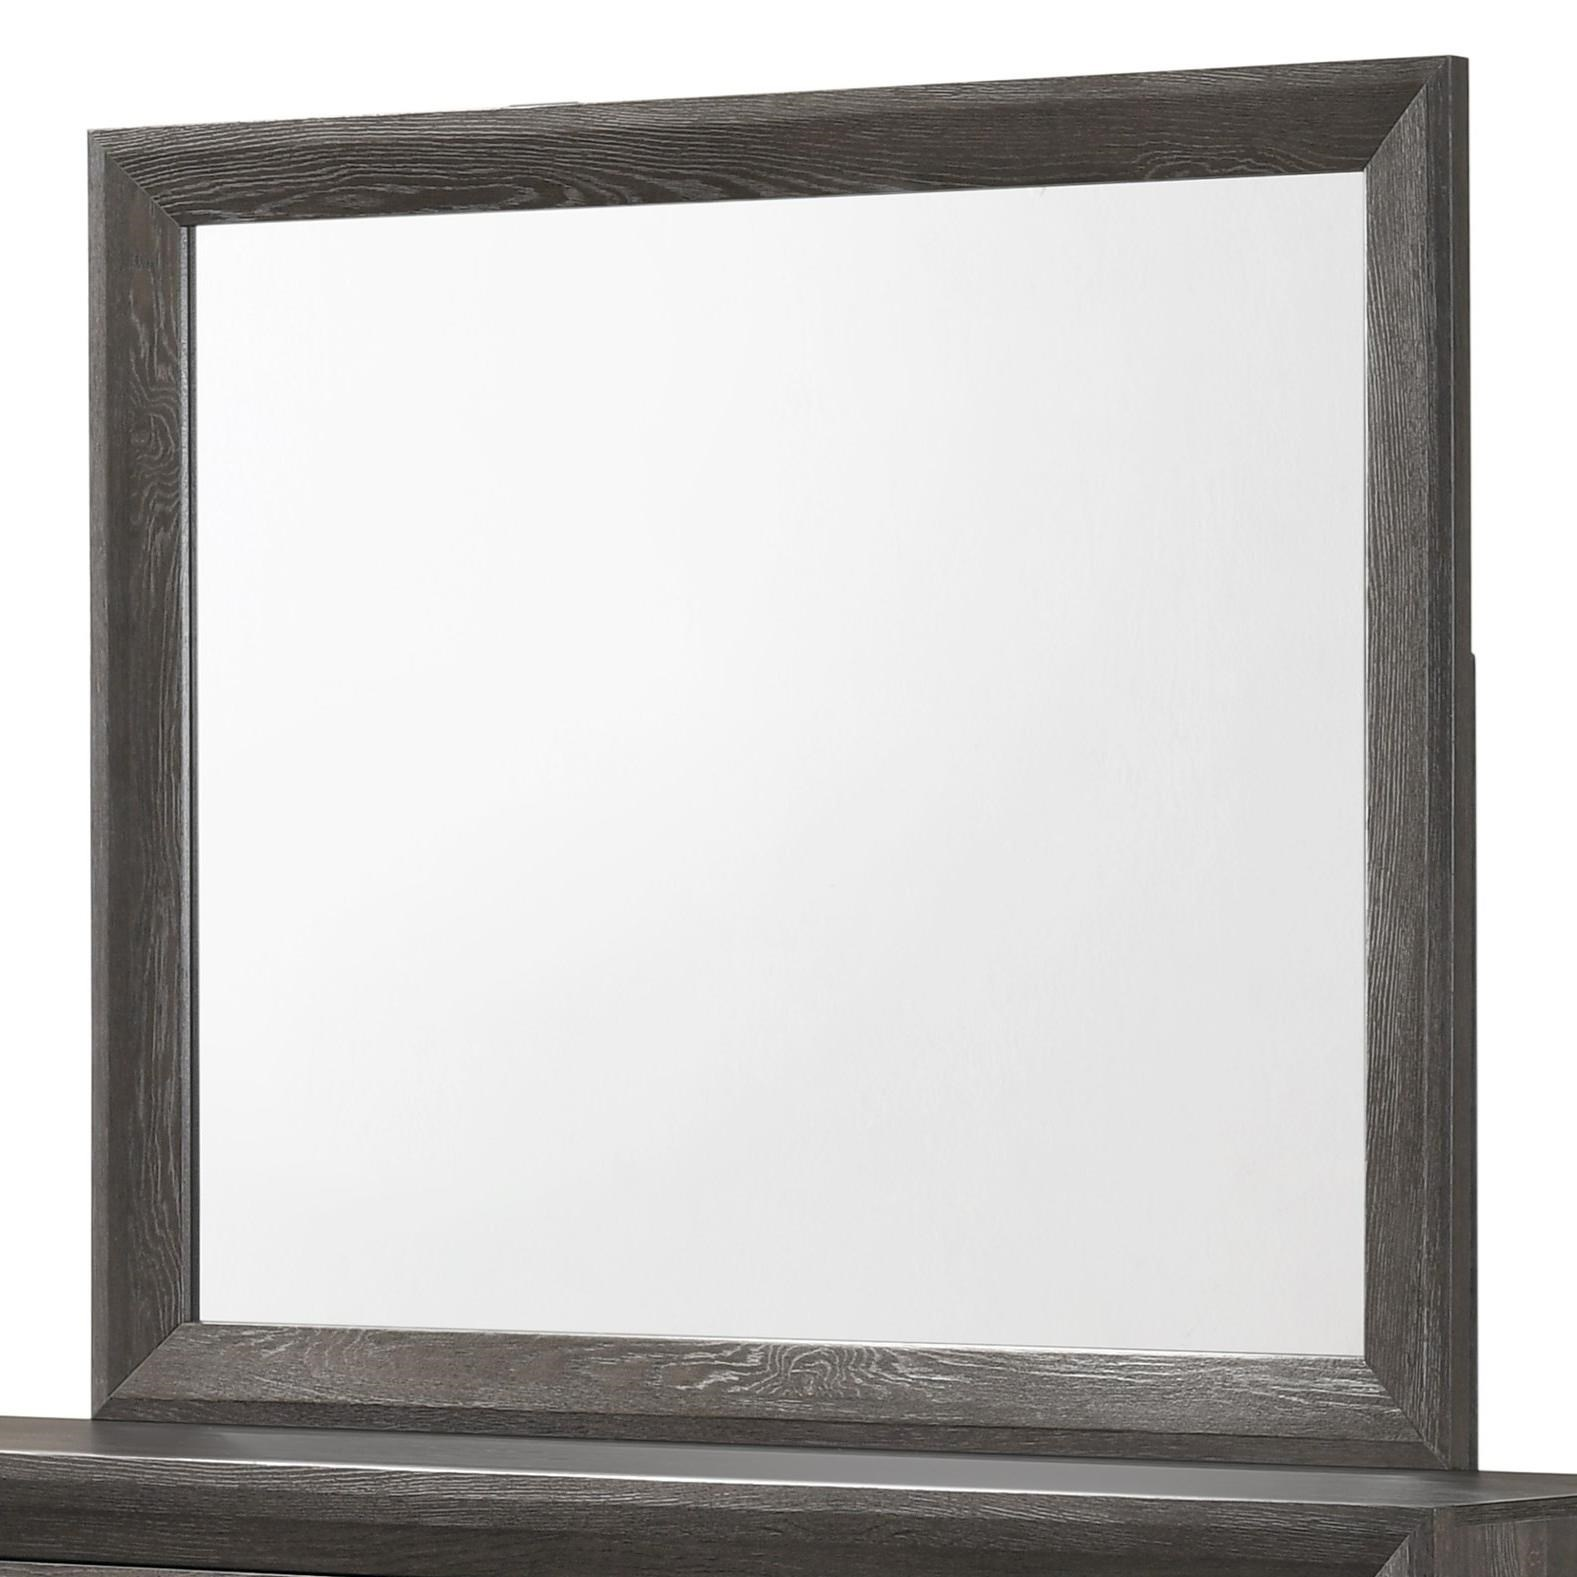 Adelaide Dresser Mirror by Crown Mark at Northeast Factory Direct